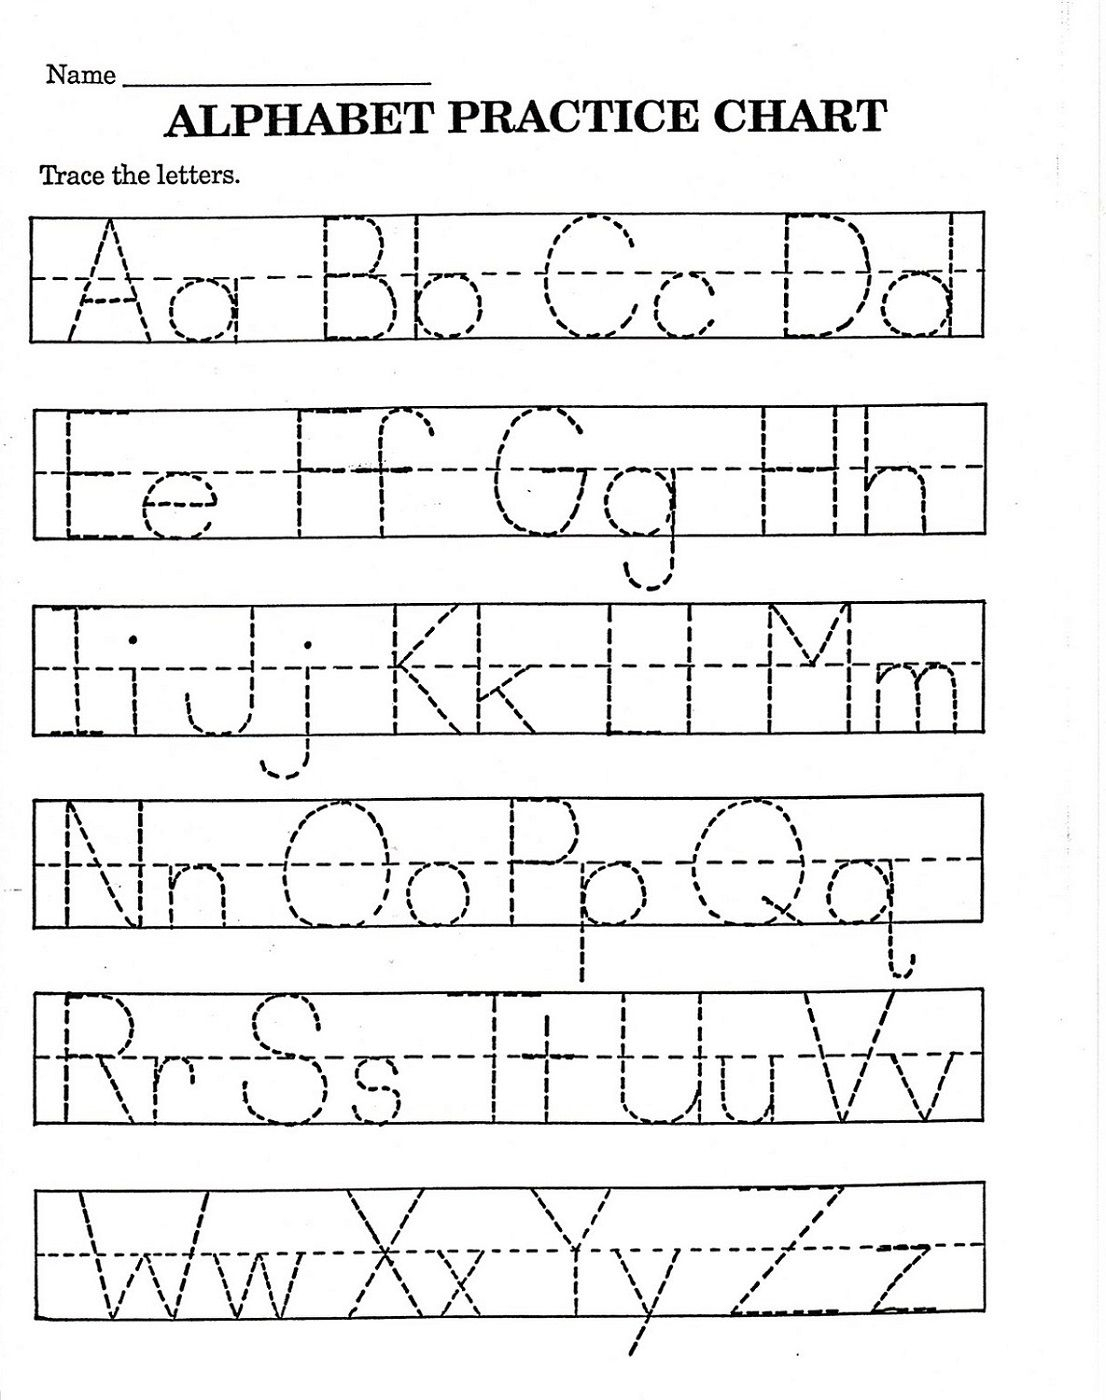 Coloring Book : Tracing Lettersheets Preschool Free Name within Trace The Letter S Worksheets For Preschool